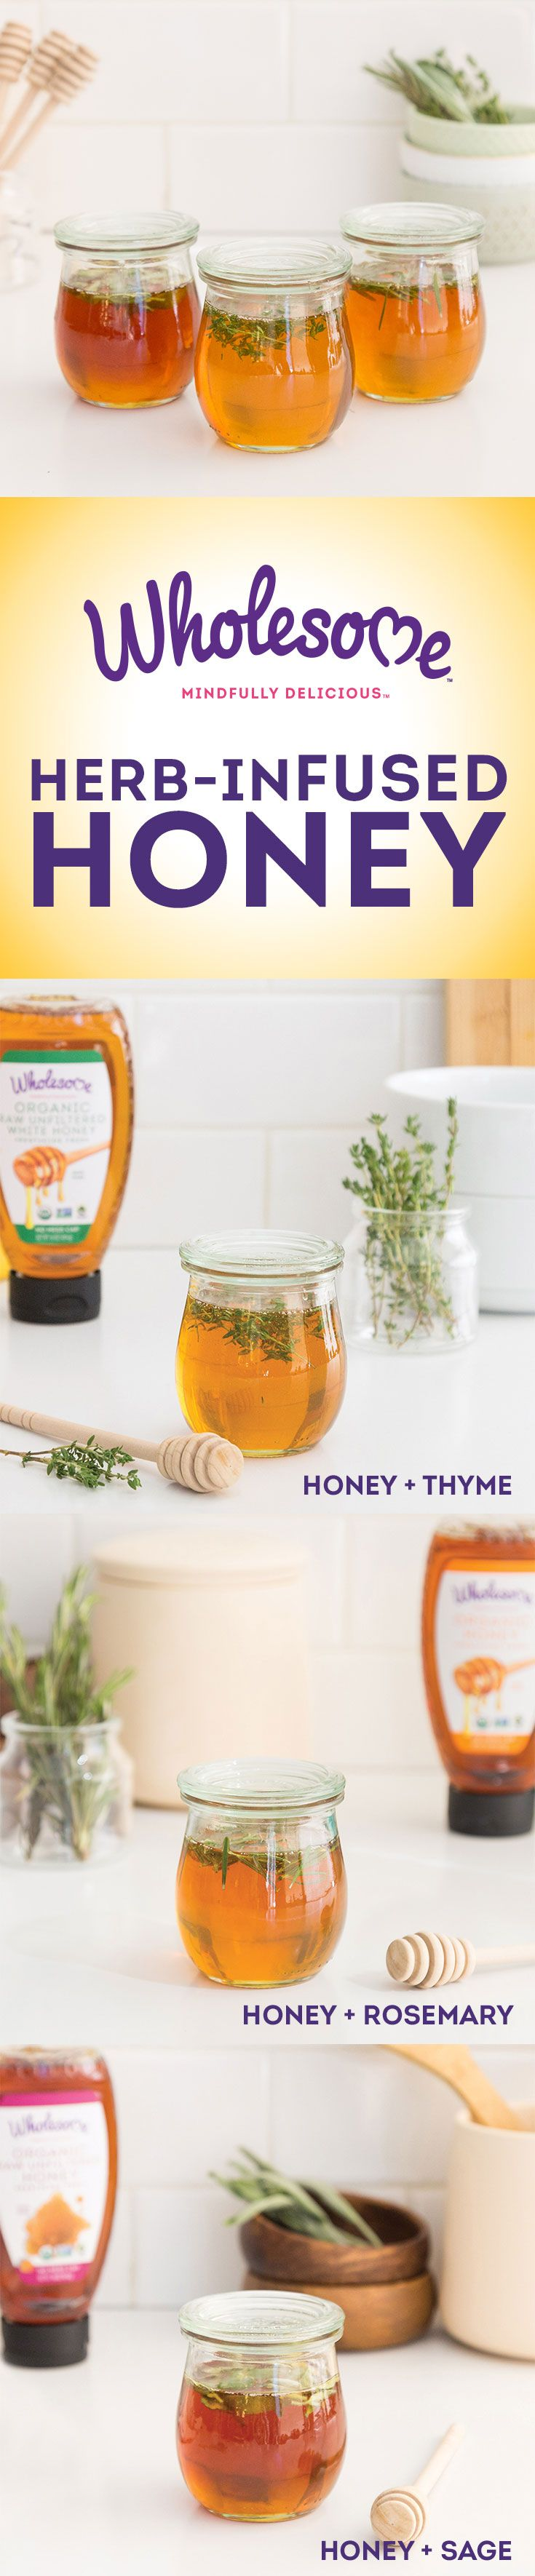 best infused honey images on pinterest bees honey and honey bees